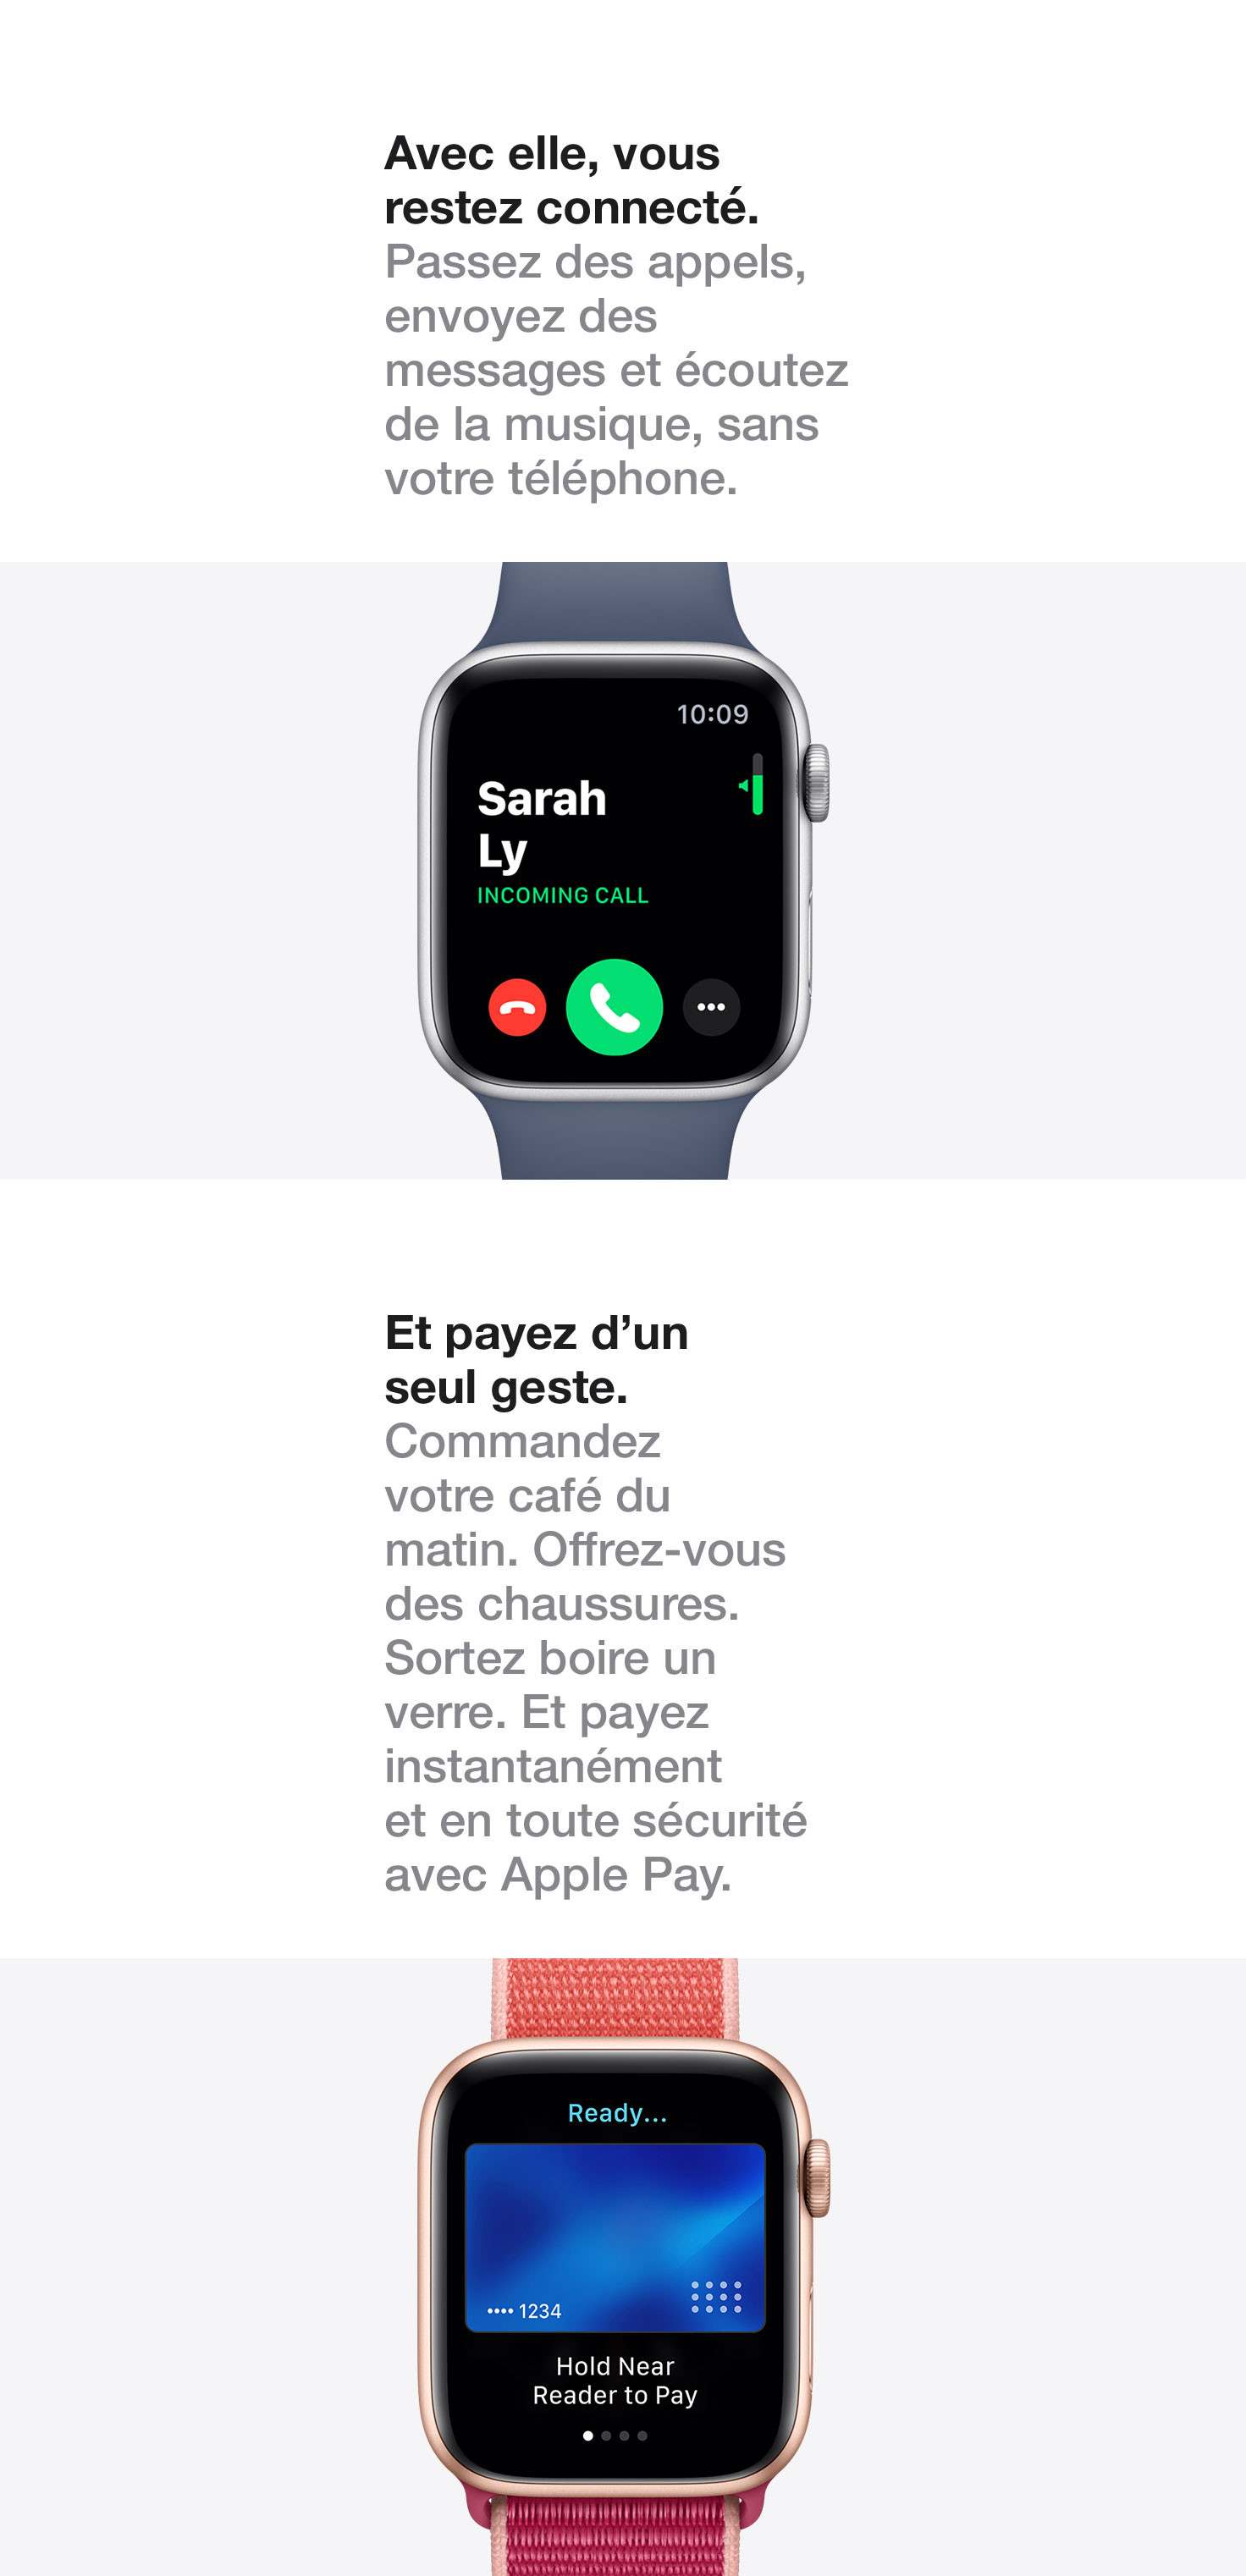 AppleWatchSeries5-productpage_fr-mobile_07.jpg